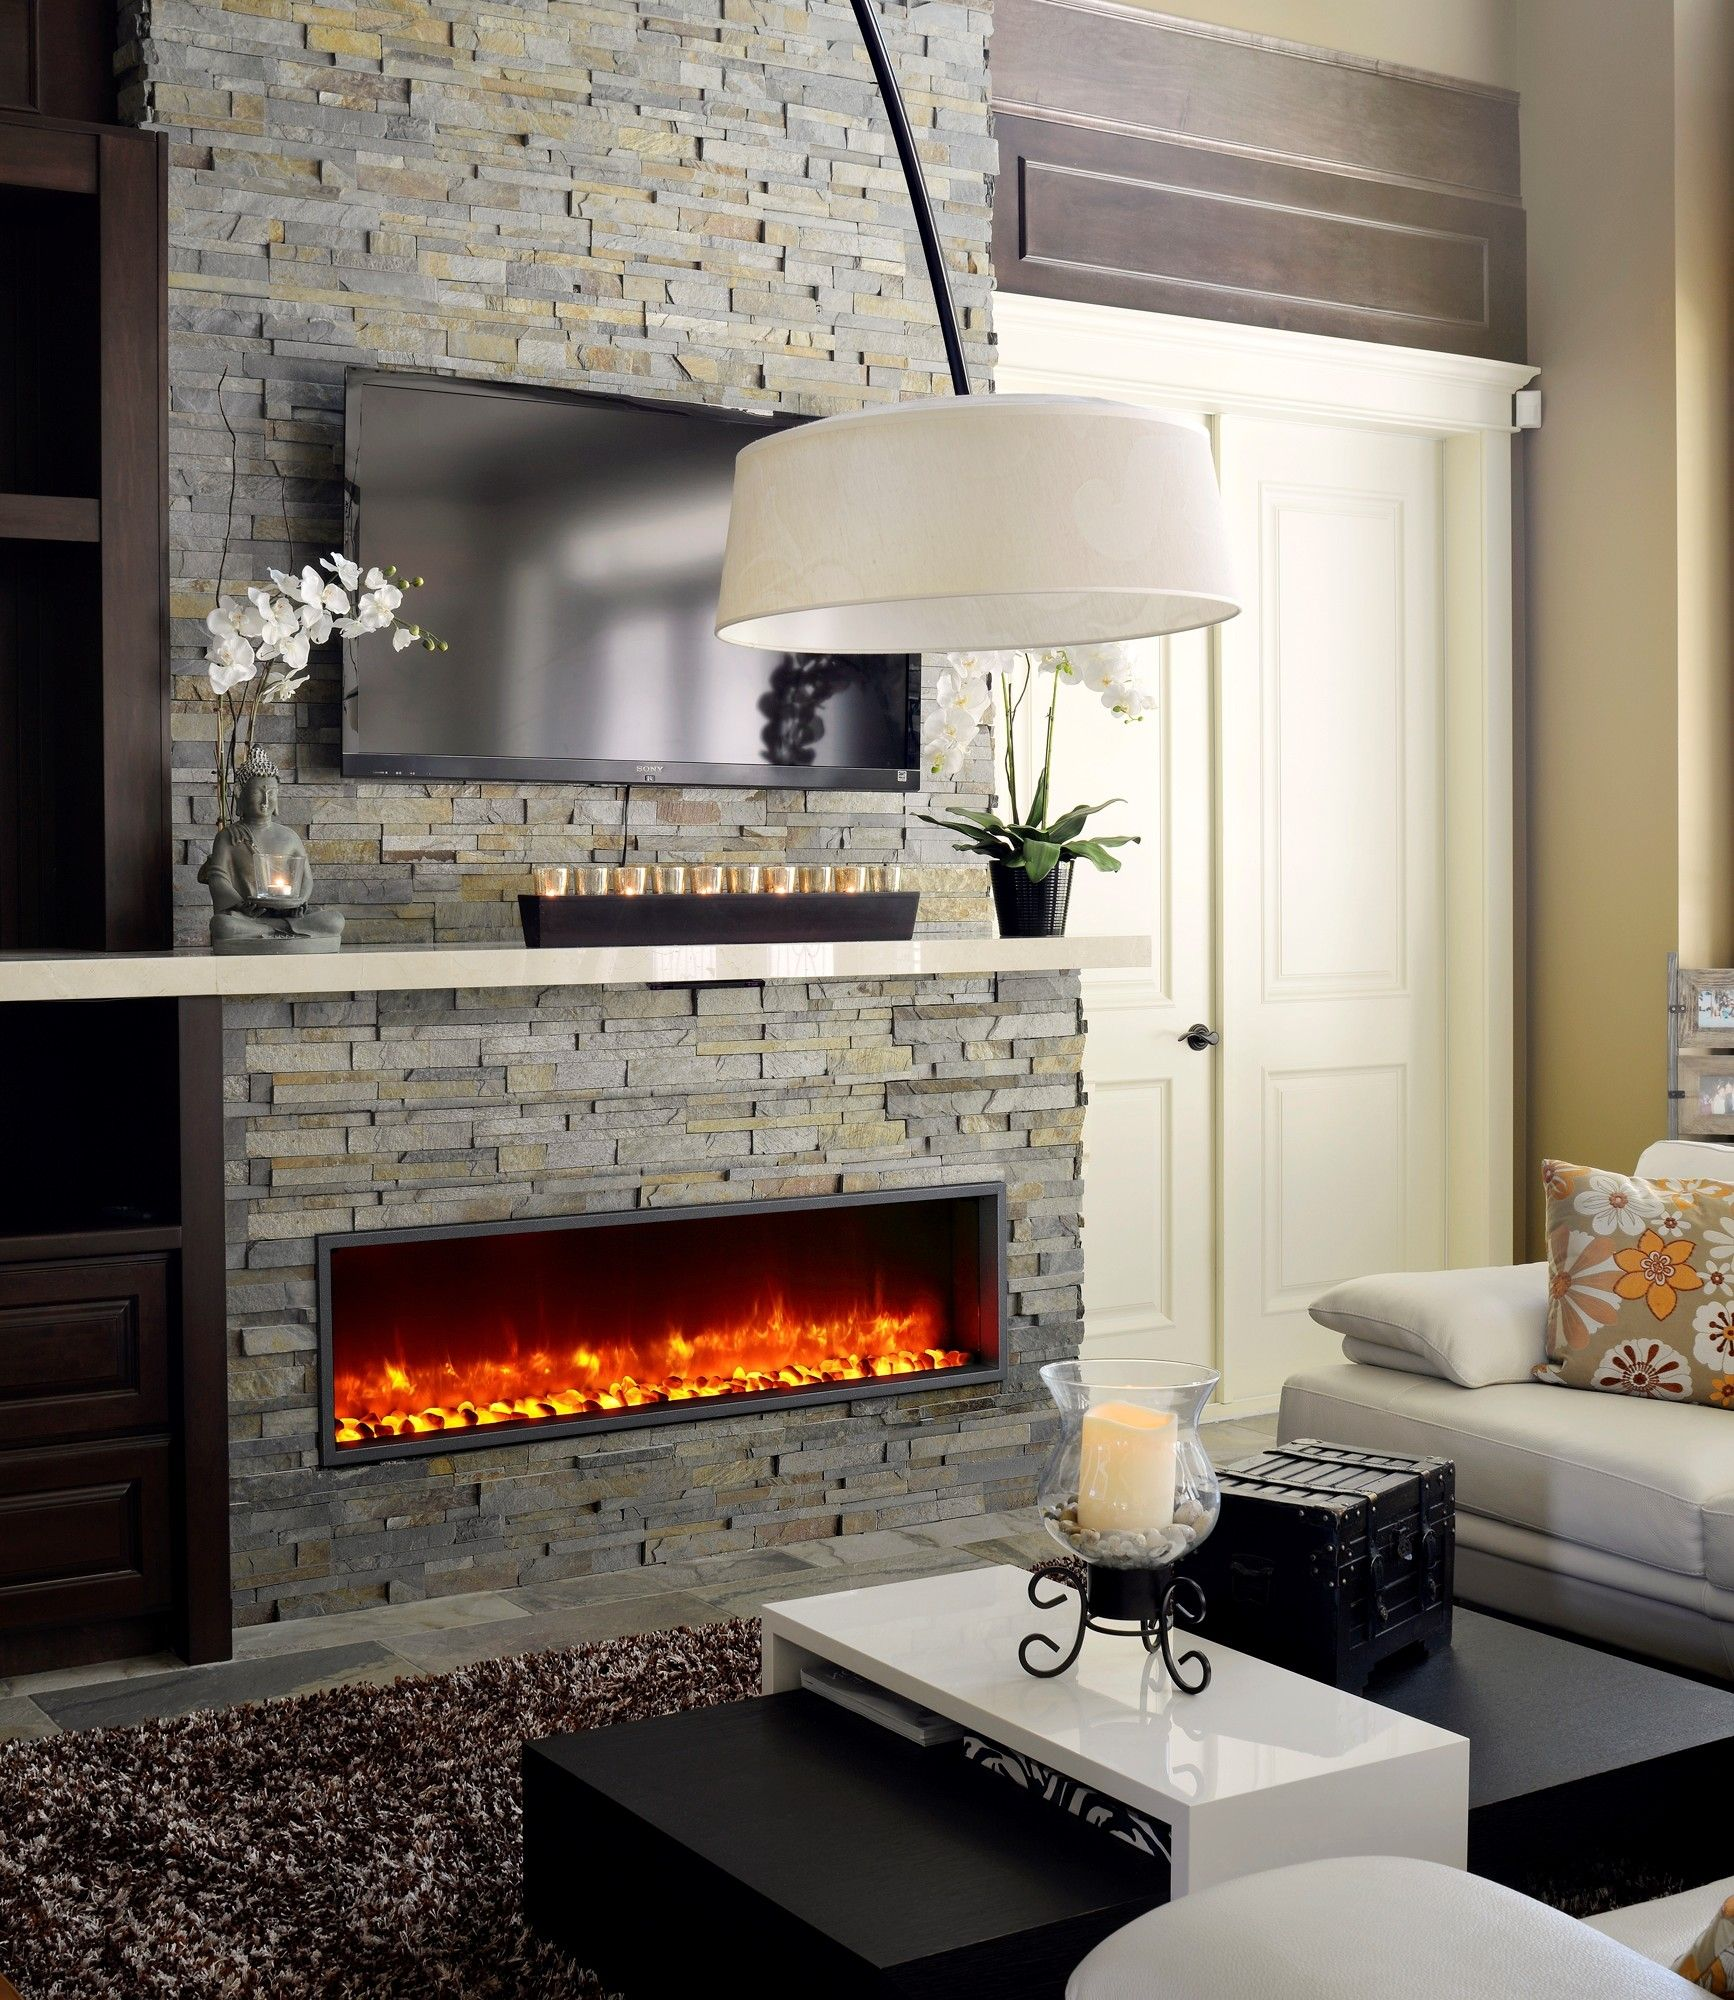 quality appealin tips fireplace ideas napoleon fireplaces design with napolean insert captivating electric mounted interior reviews gas wall for linear